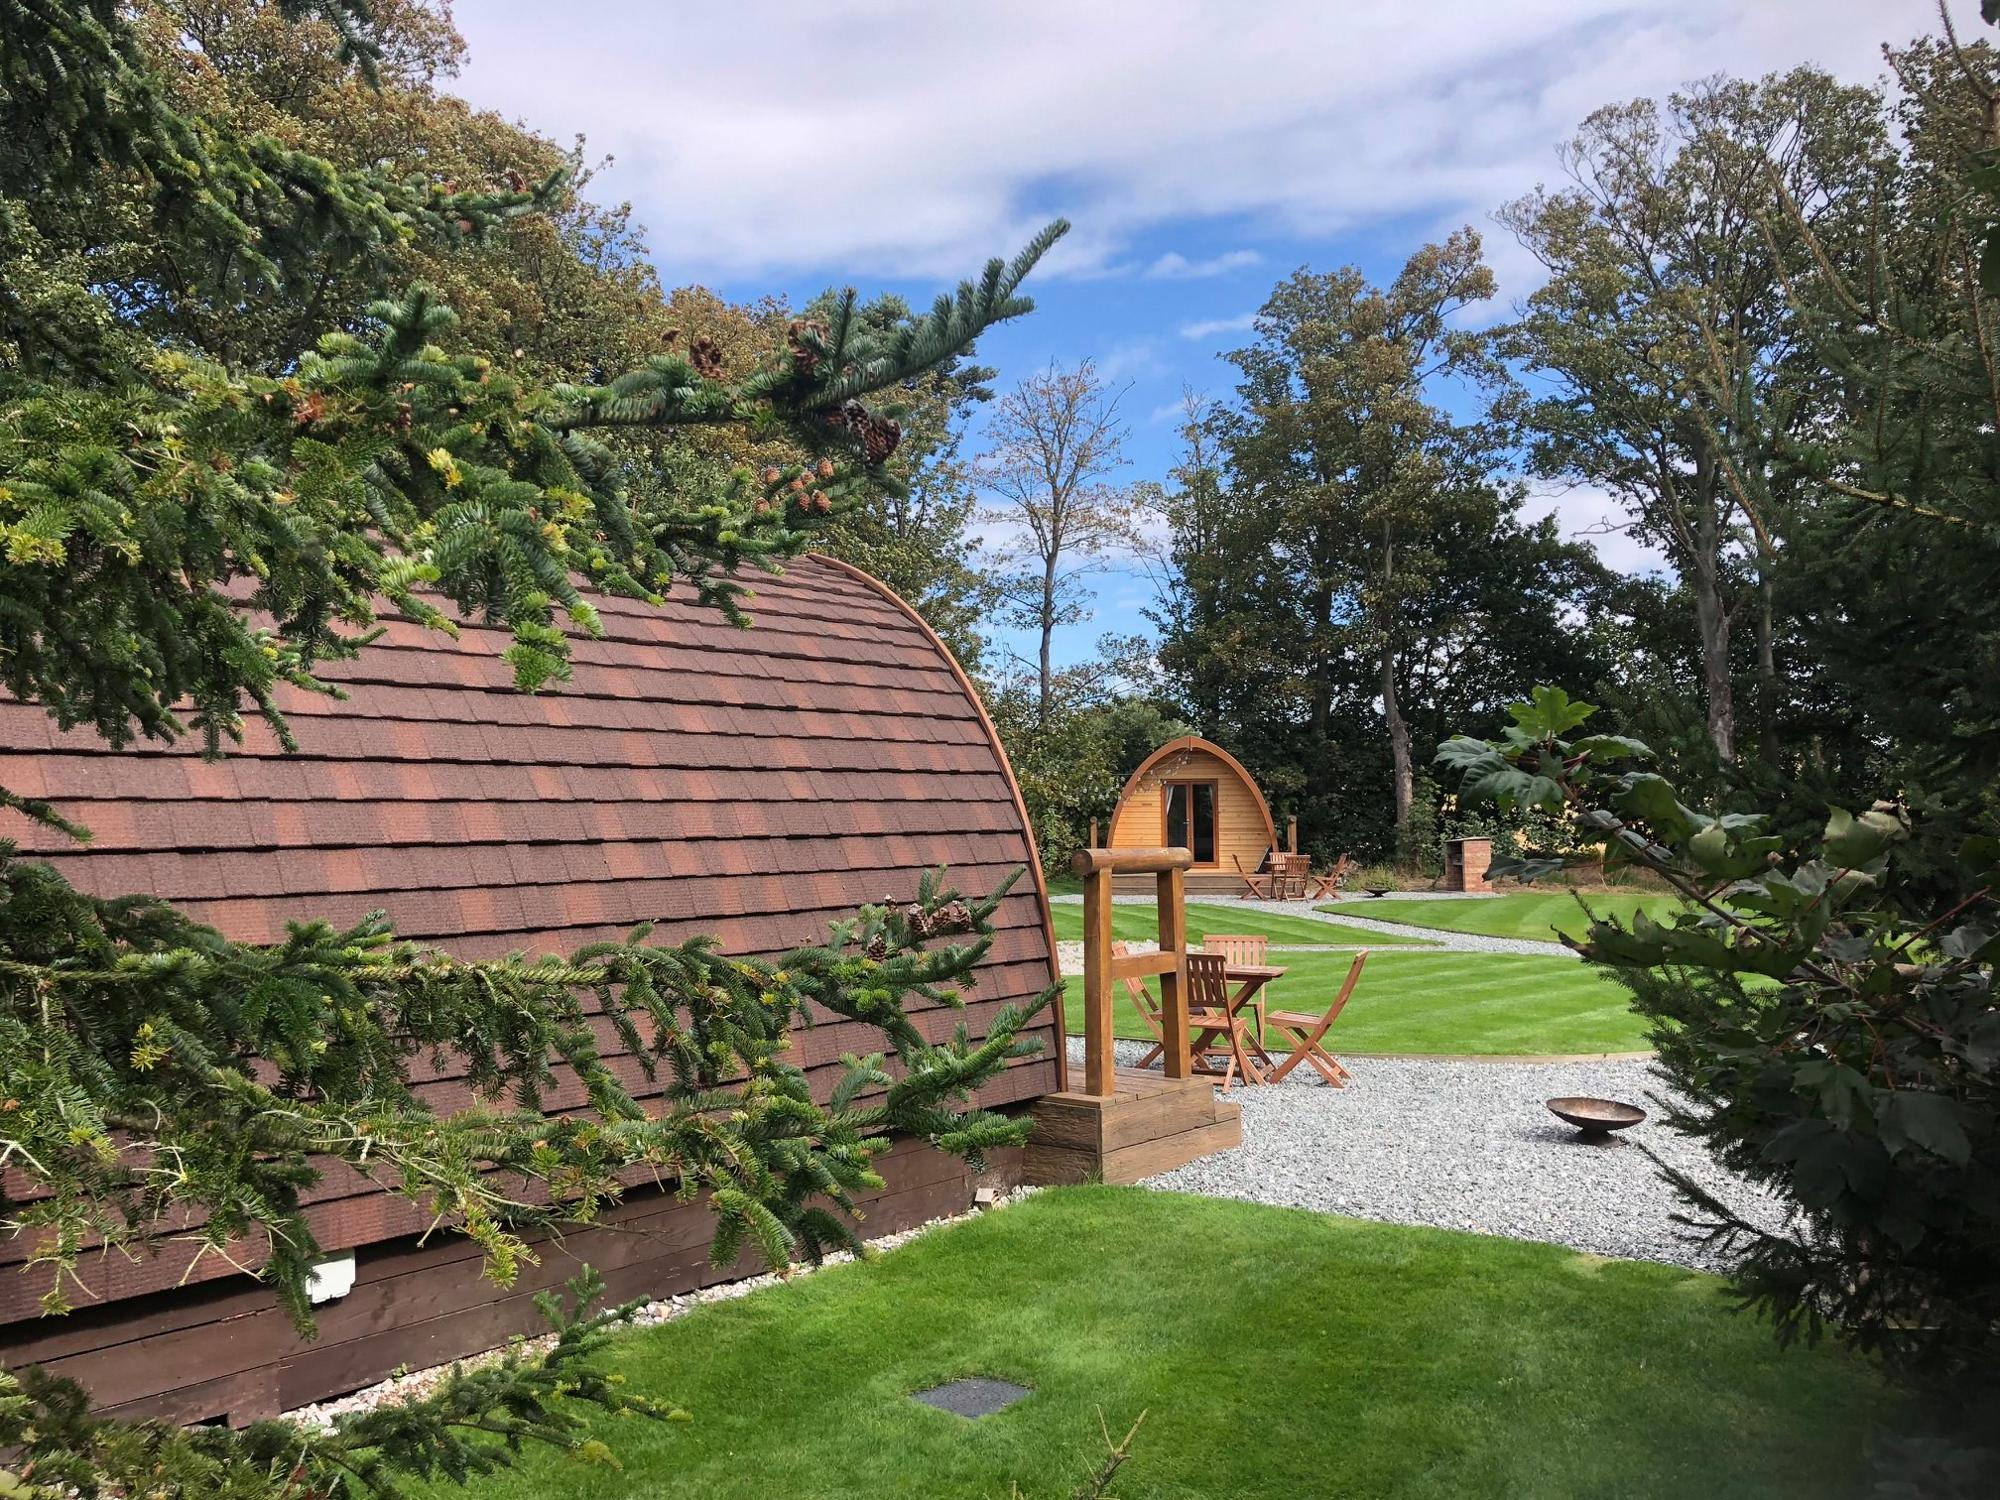 Glamping in Beverley – Cool Camping